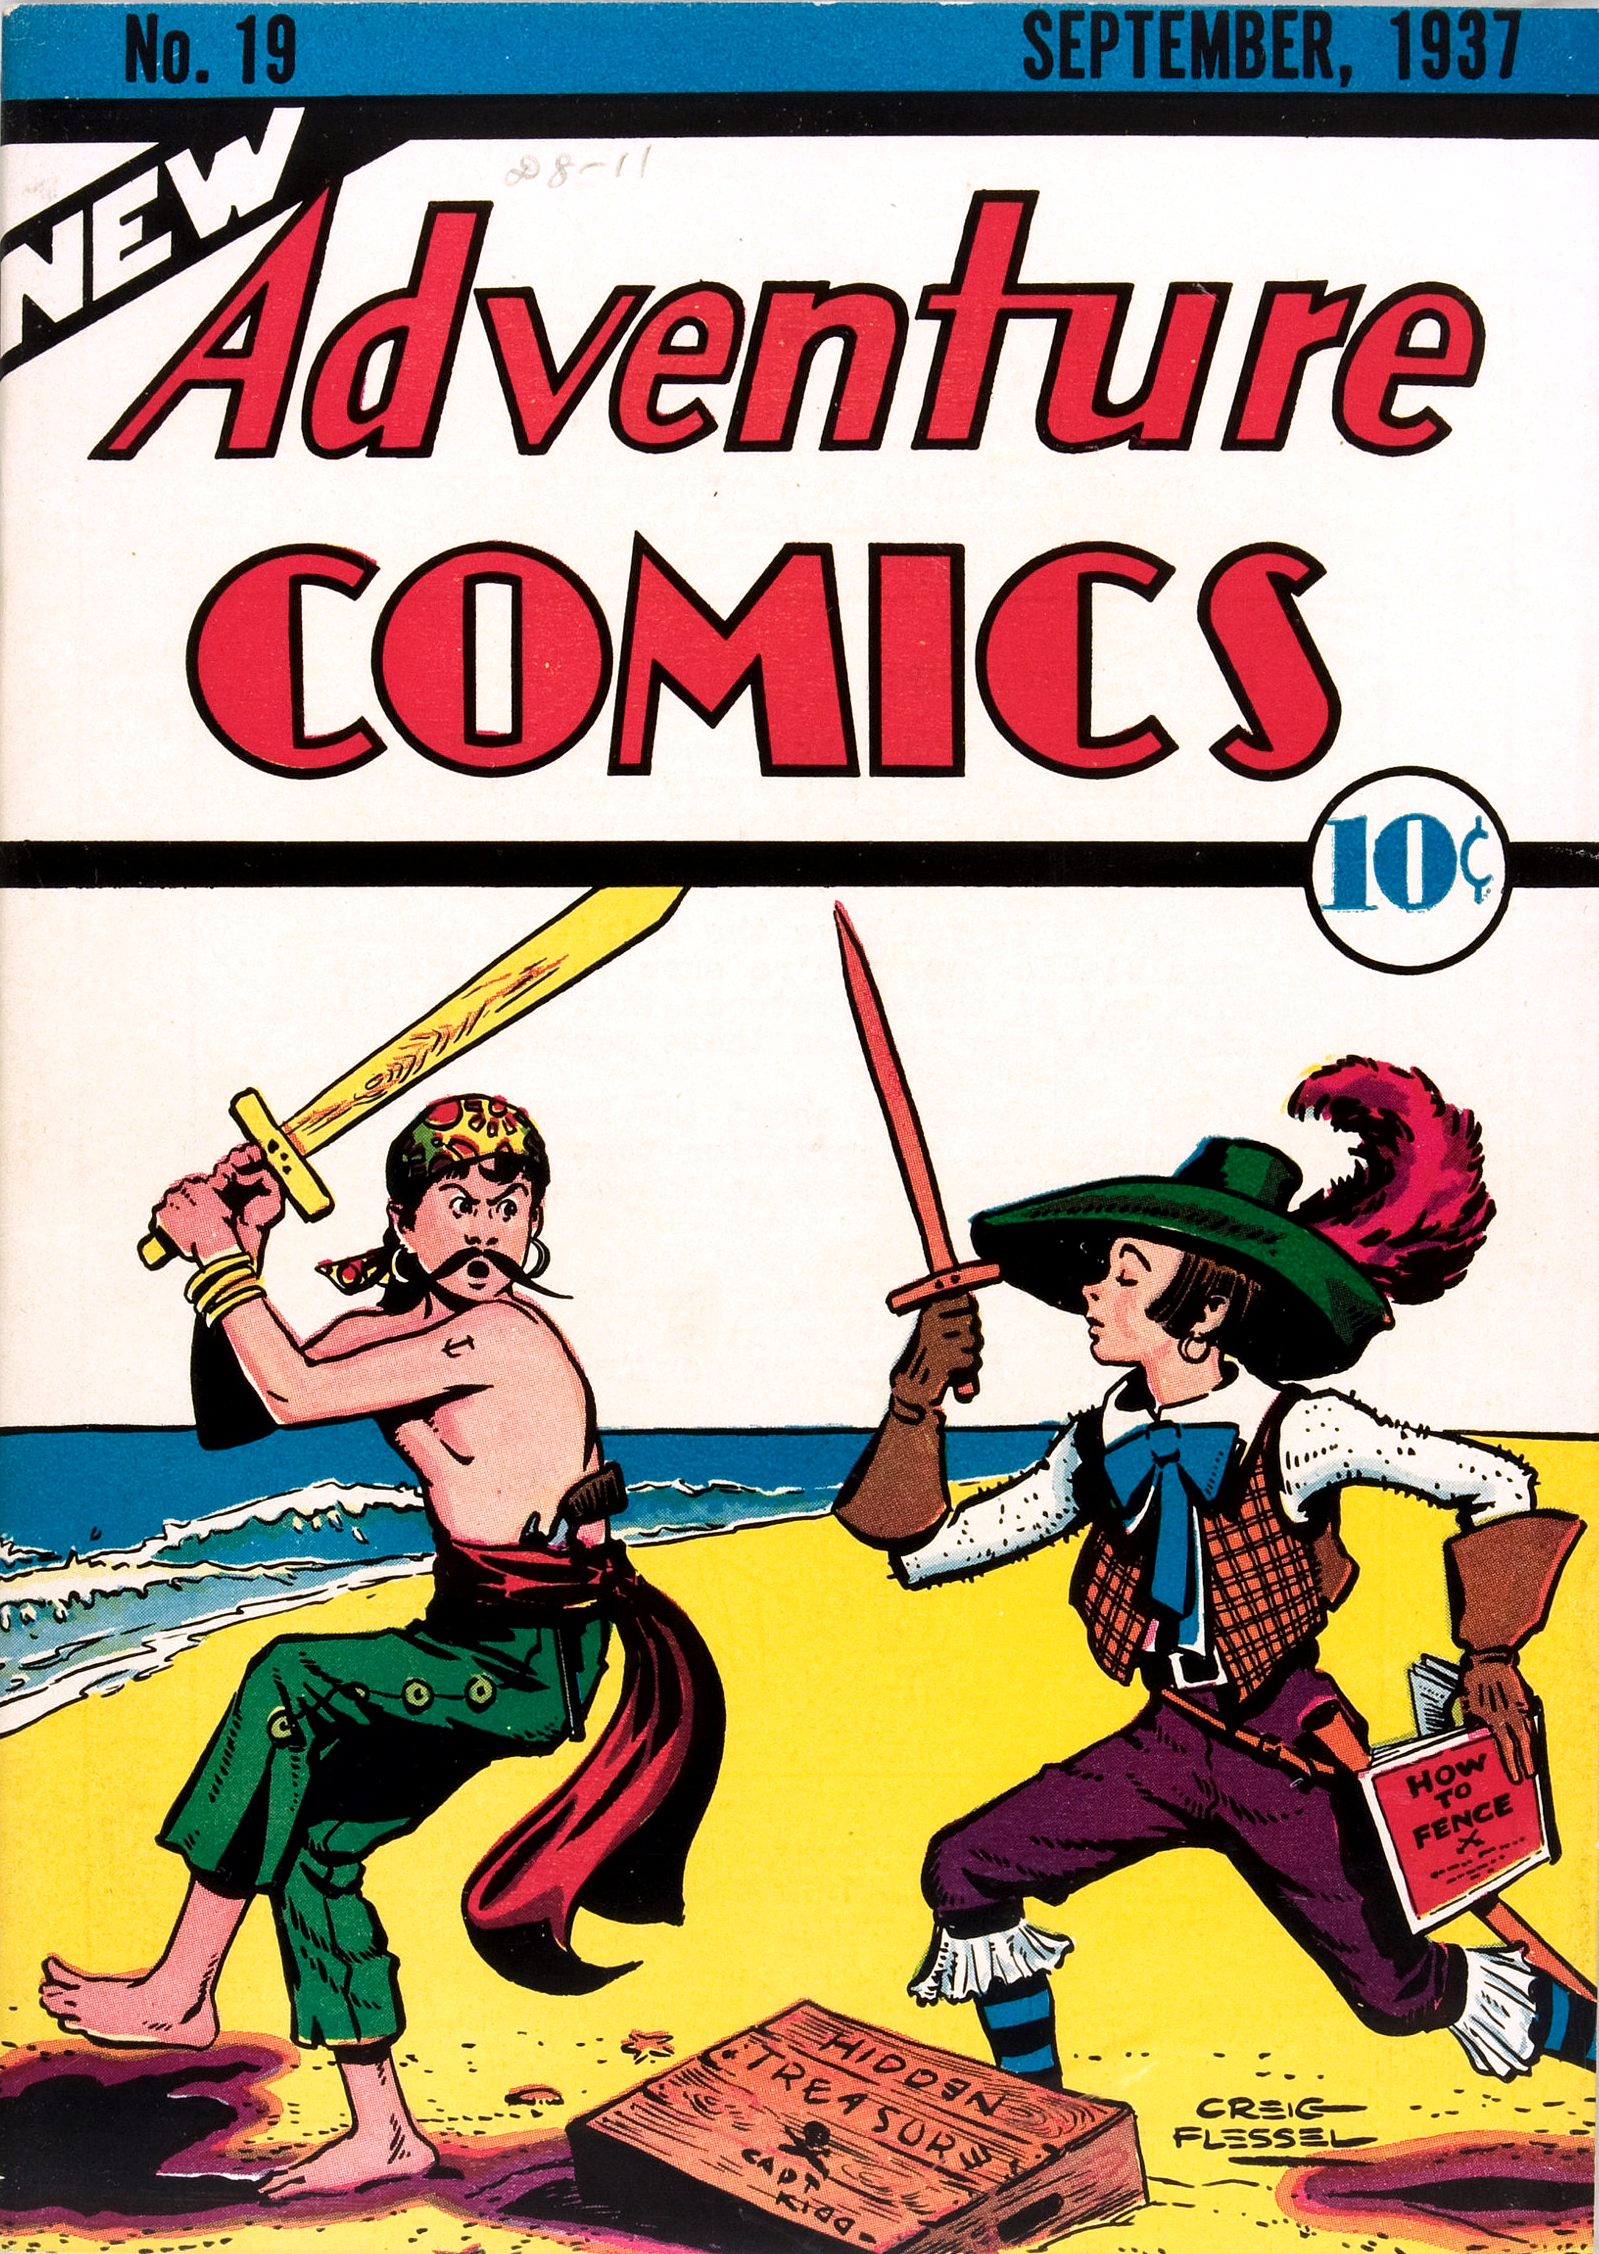 New Adventure Comics Vol 1 19